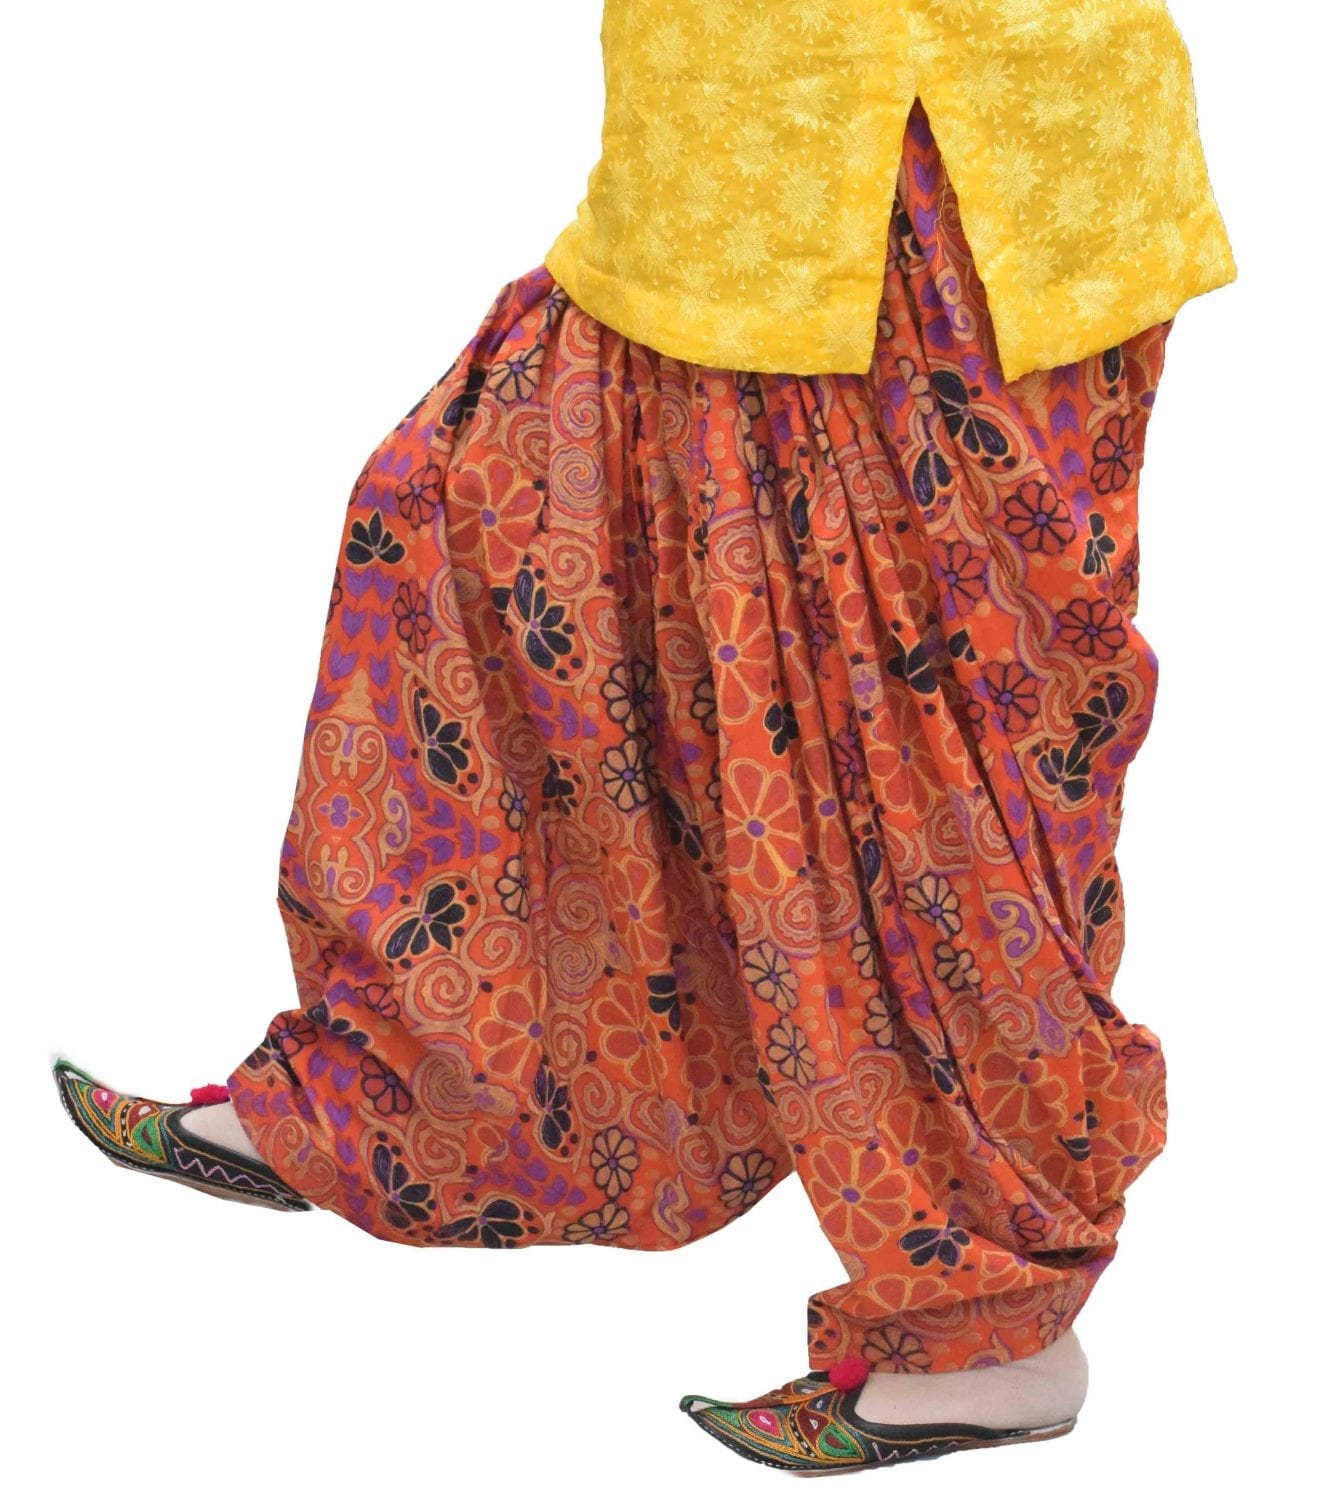 Printed Full Patiala Salwar Limited Edition 100% Pure Cotton Shalwar PPS270 1